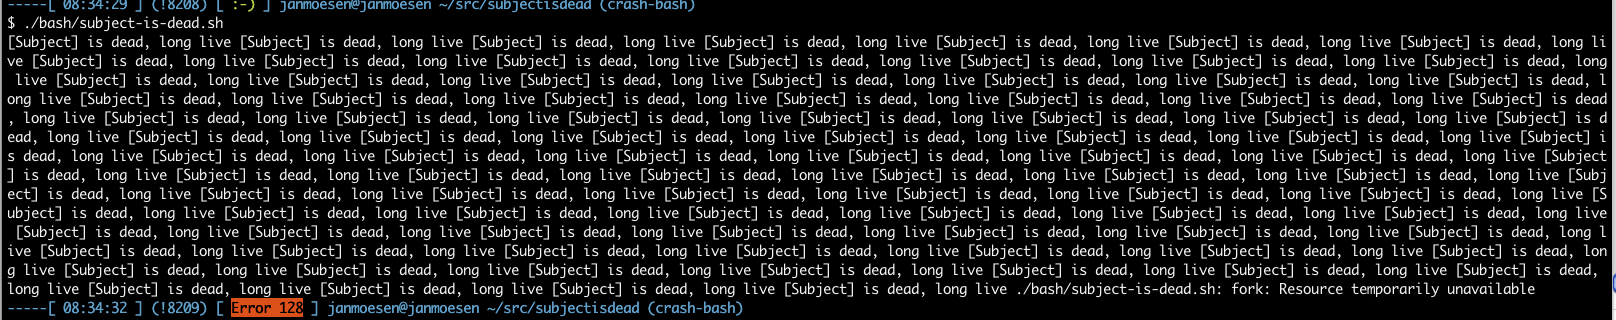 Subject is dead, long live Subject